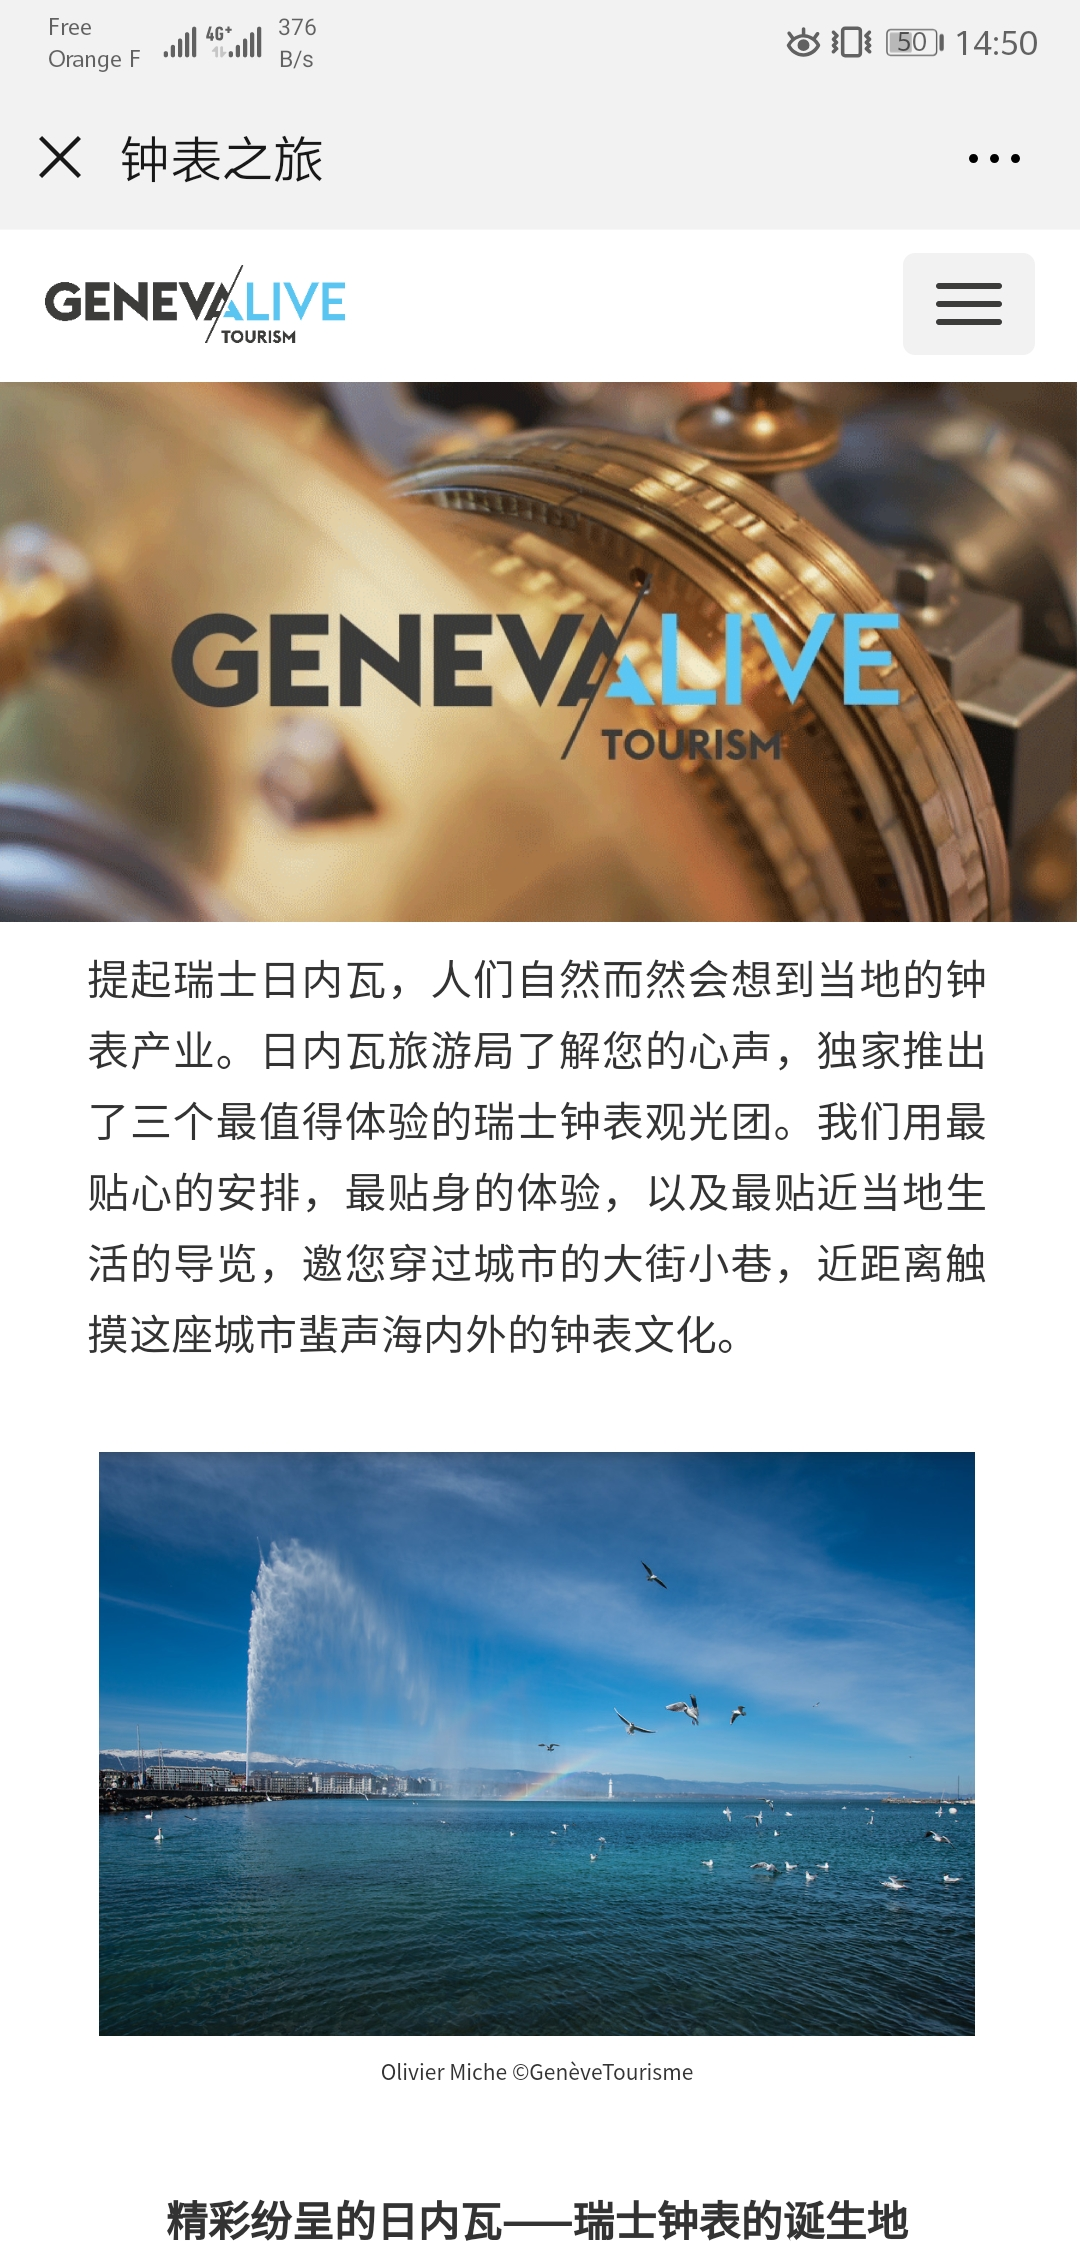 GENEVA TOURISM WeChat official account